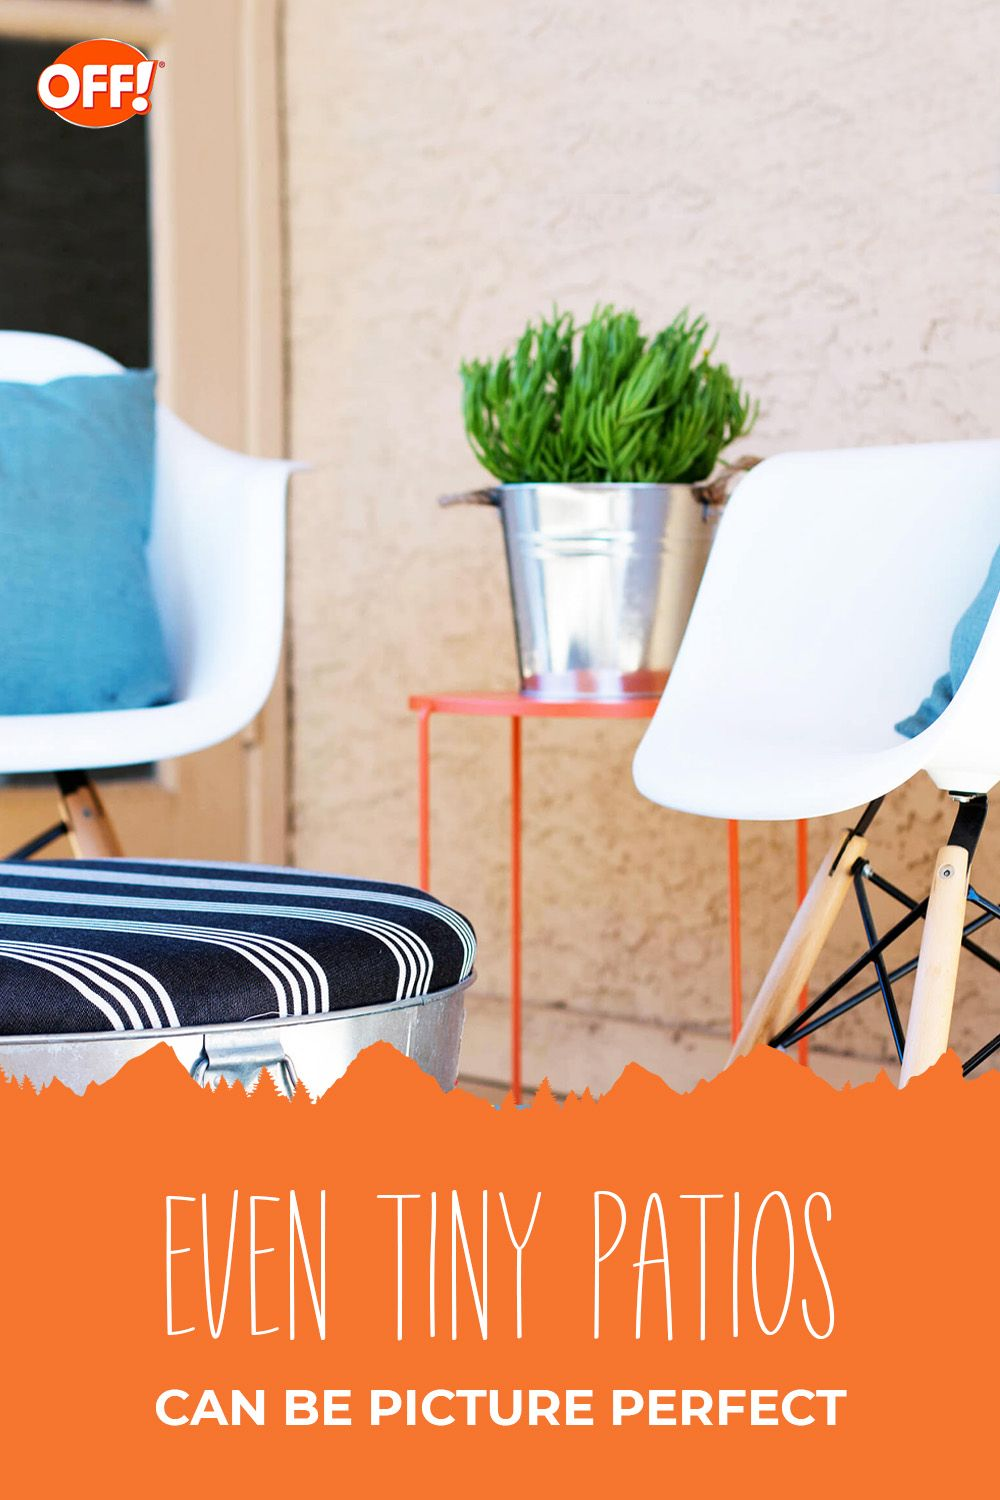 5 Ways to Make the Most of Small Outdoor Spaces | OFF!® Repellent